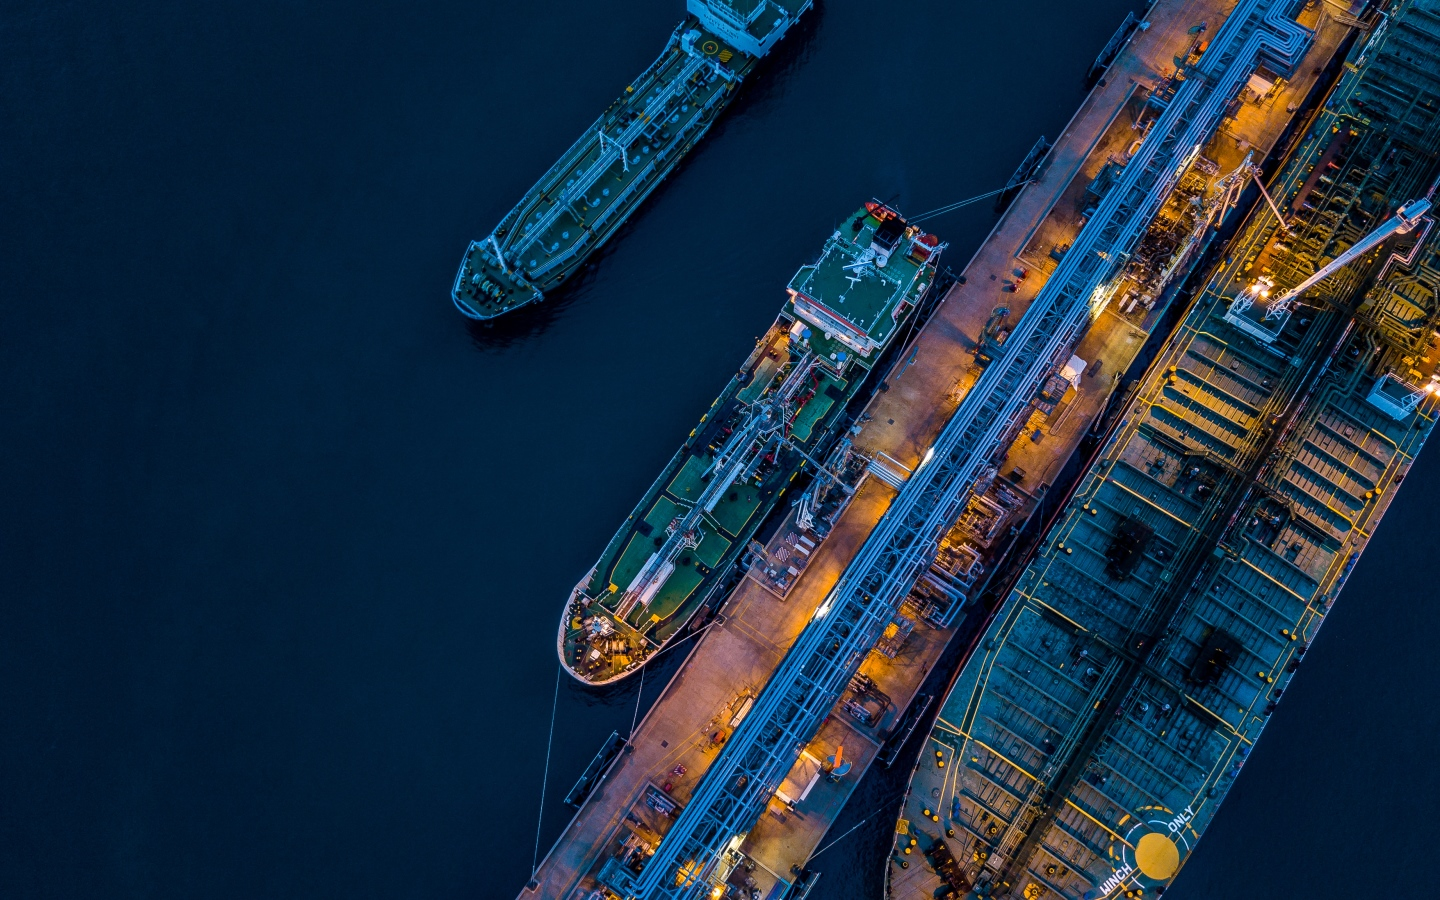 Ships in dockyard at night